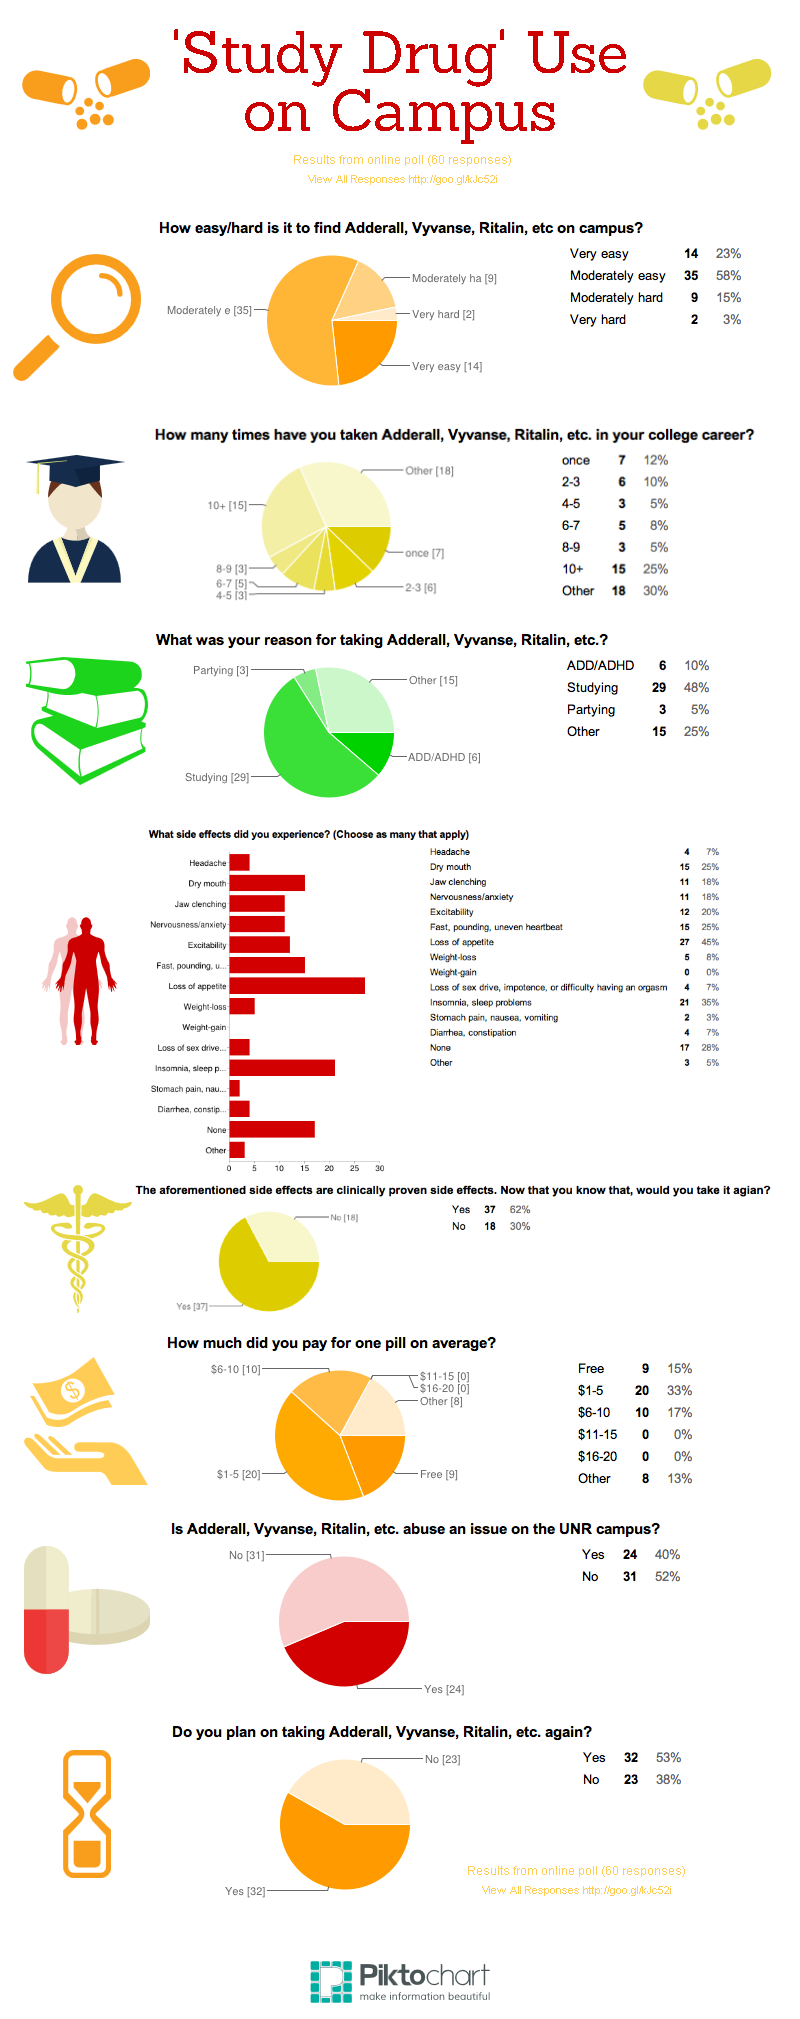 Results from our online survey. (View all responses: http://goo.gl/kJc52i). Inofgraphic: http://goo.gl/Lo5Jdr